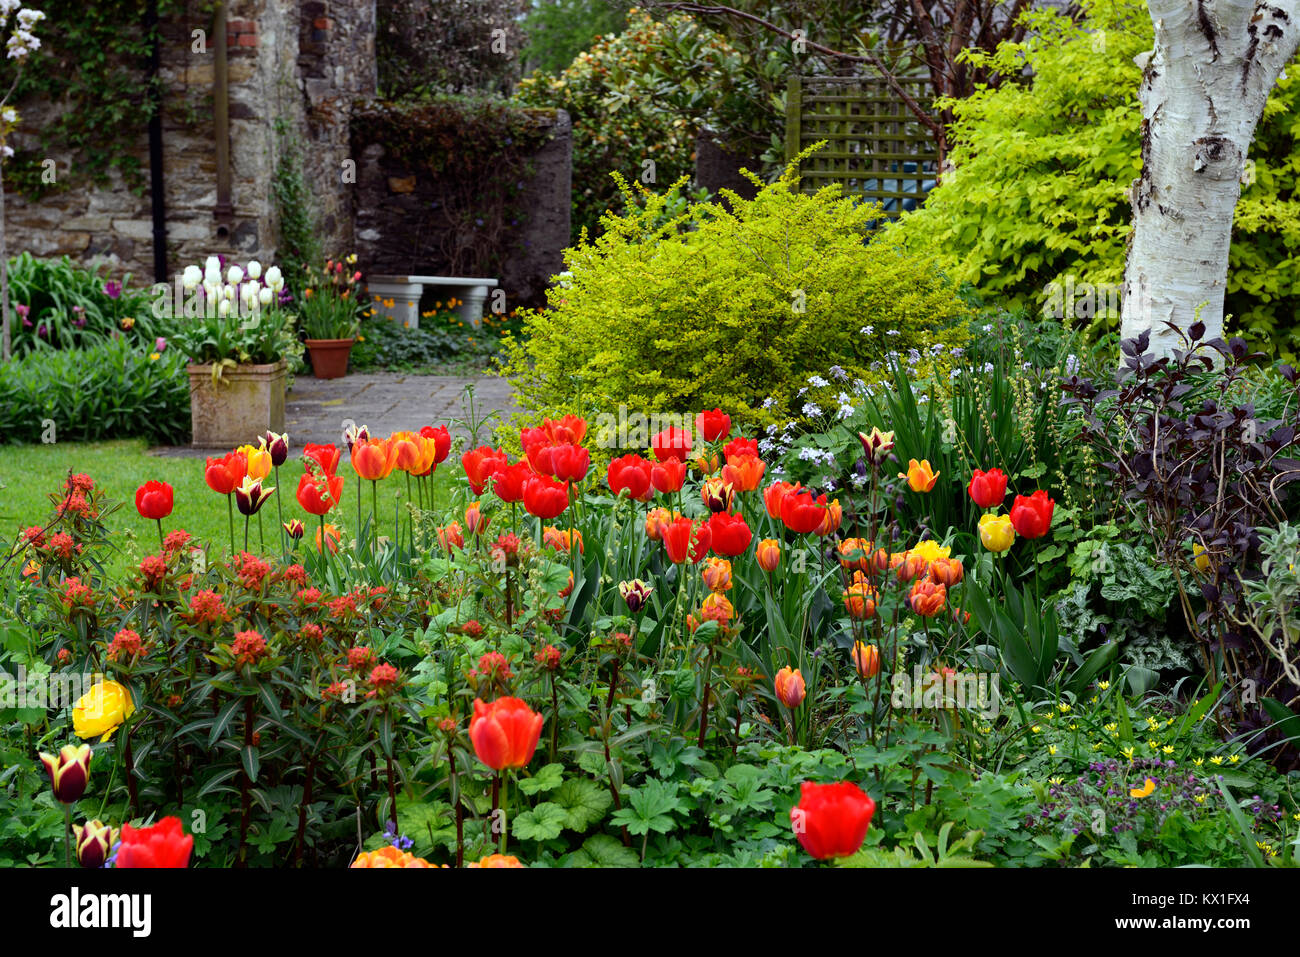 Tulipa apeldoorn elite,darwin hybrid,red,tulip,flowers,display,The Bay Garden,Camolin,RM Floral - Stock Image